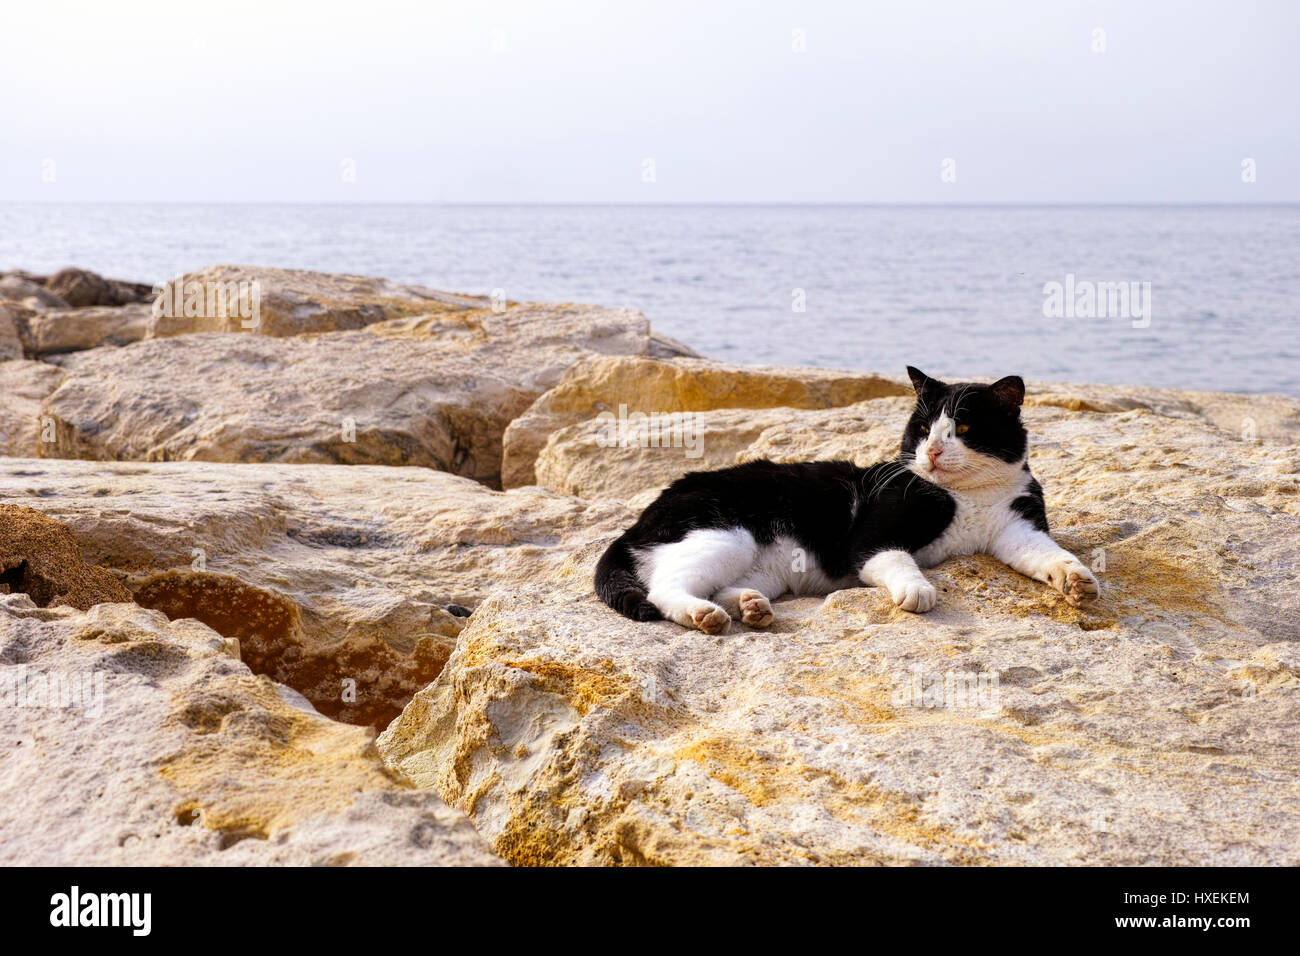 Black and white street cat laying on rocks with  background of sea. - Stock Image